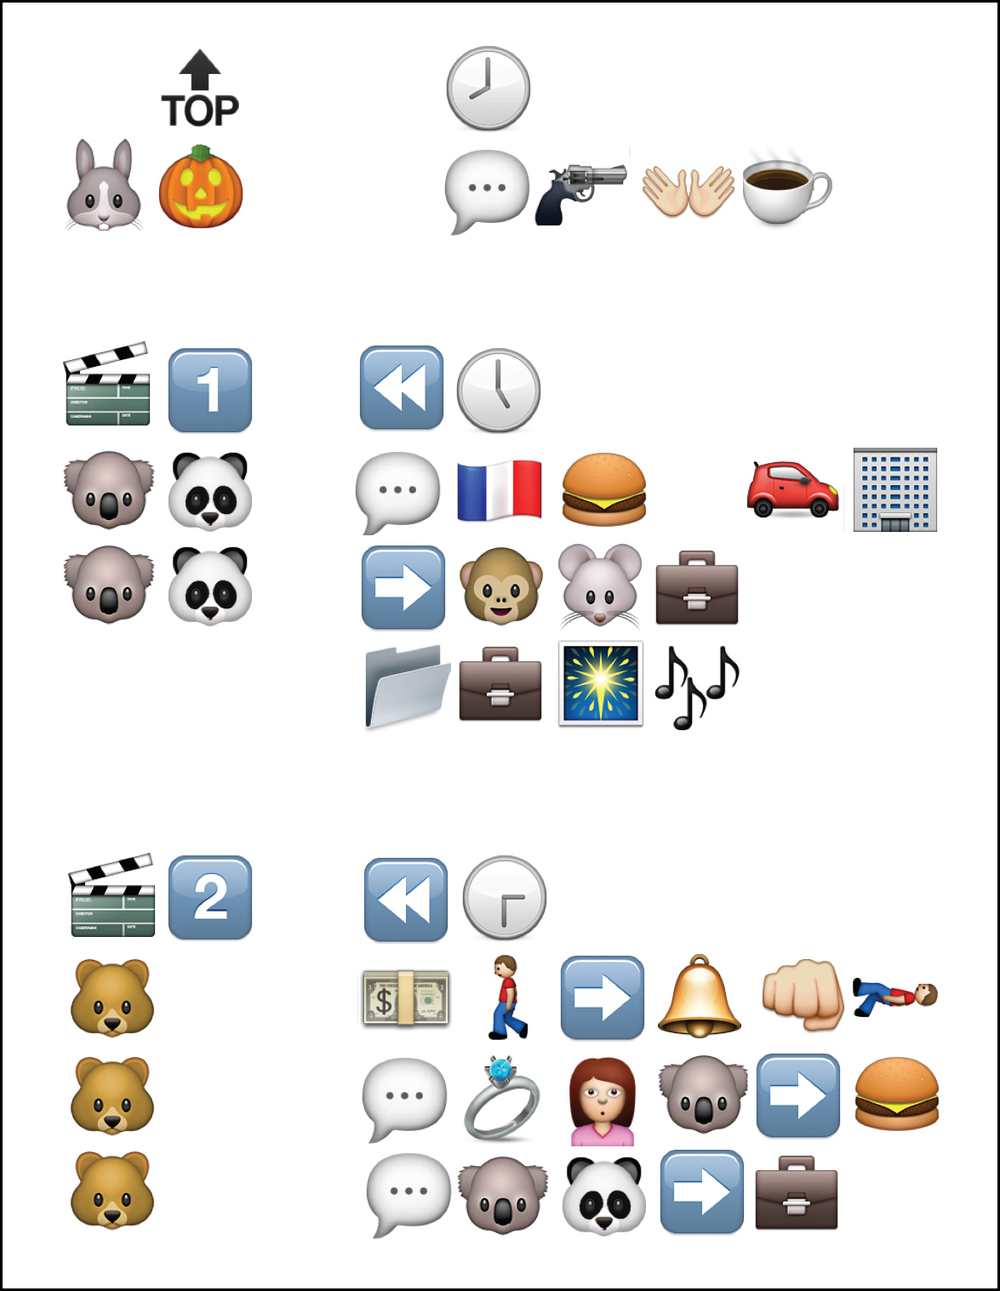 ART2373 Symbol Design - Emoji Narrative Detail 2: Joshua Johns